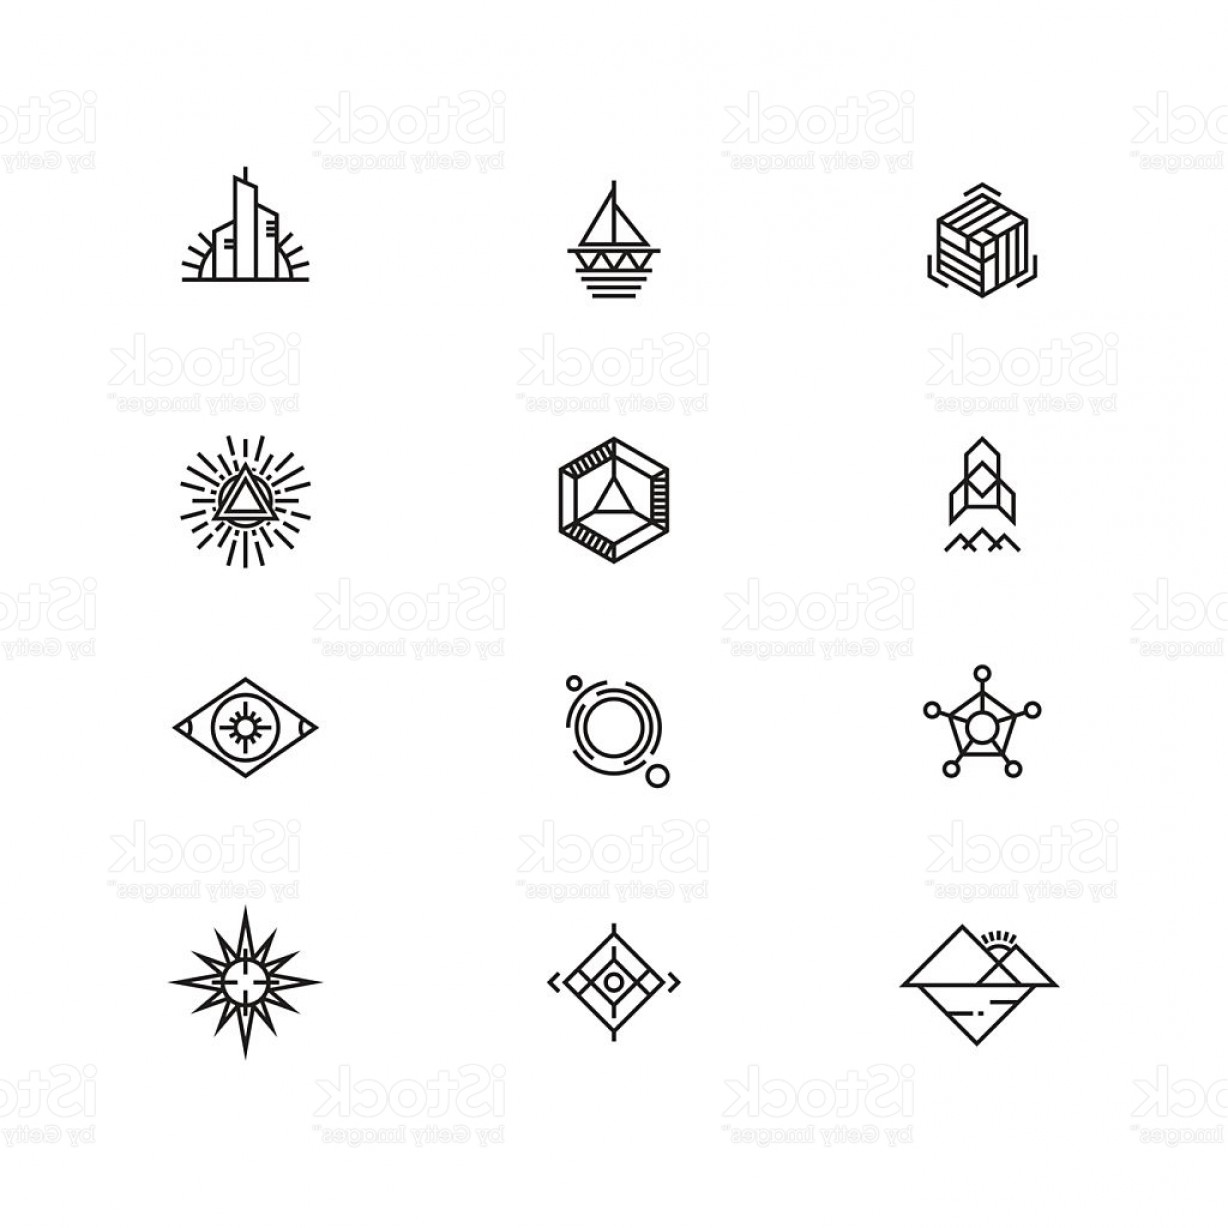 Logo Elements Vector: Linear Geometric Logo Elements For Business Gm